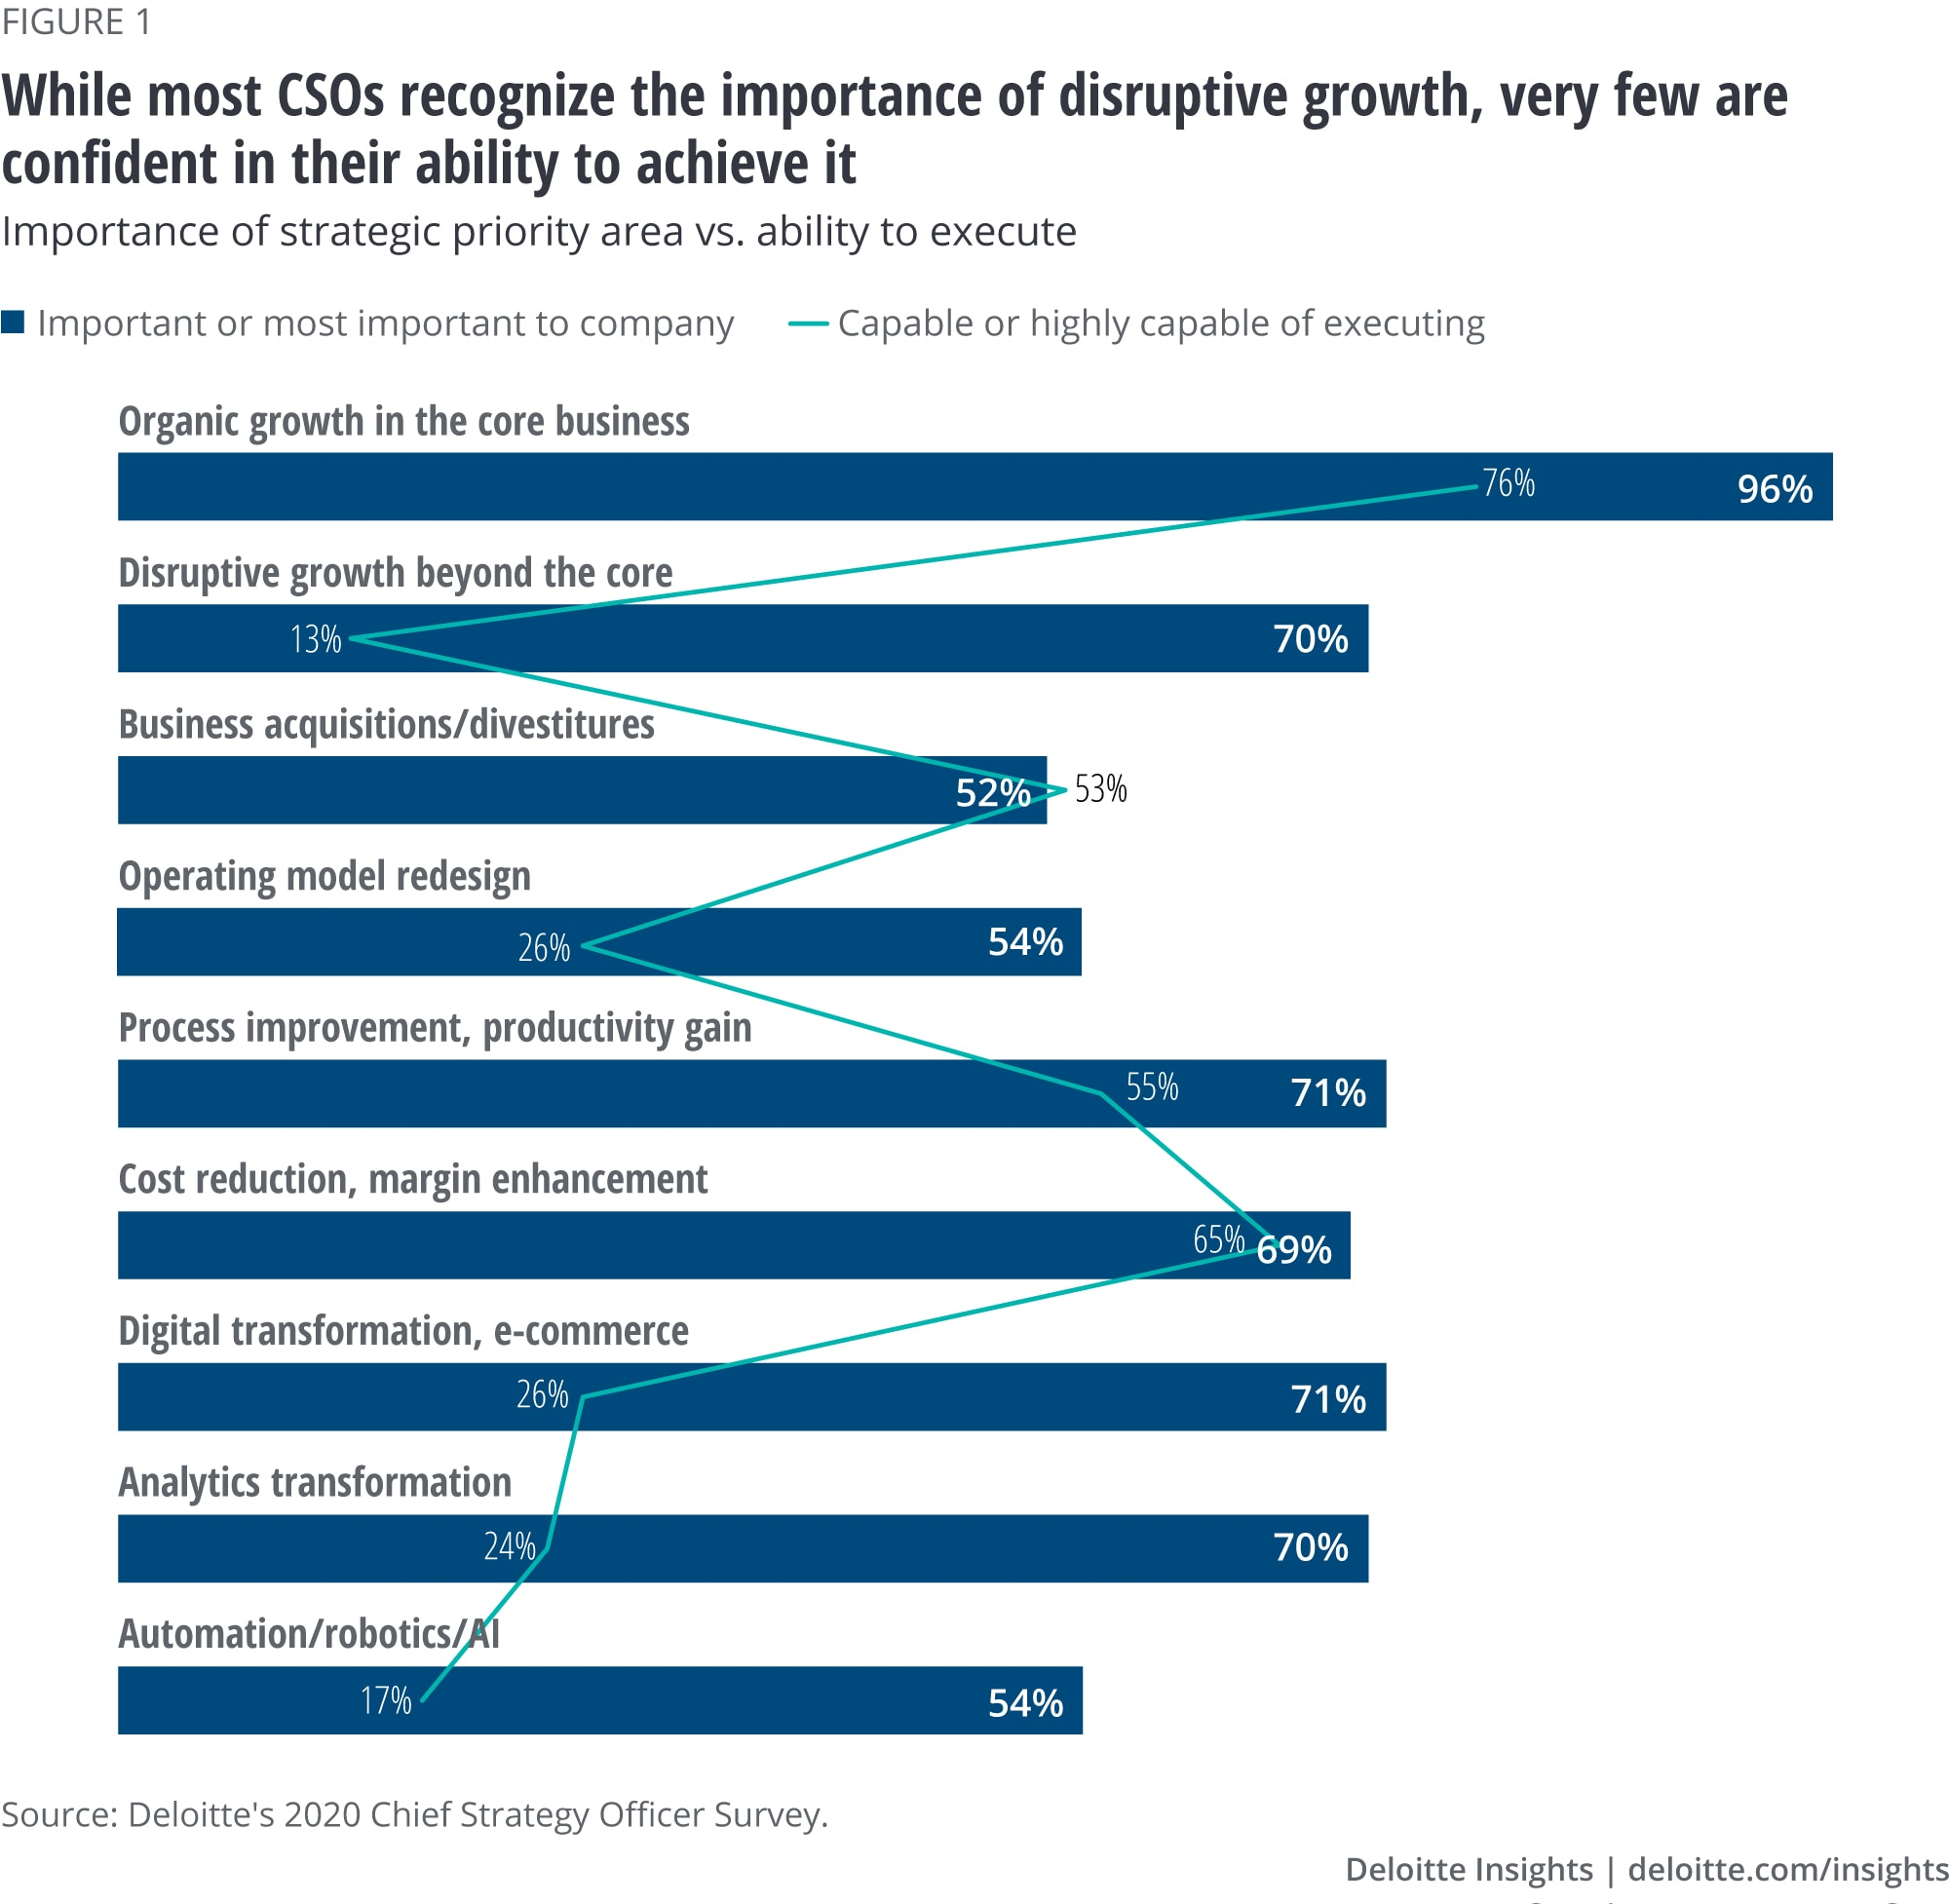 While most CSOs recognize the importance of disruptive growth, very few are confident in their ability to achieve it